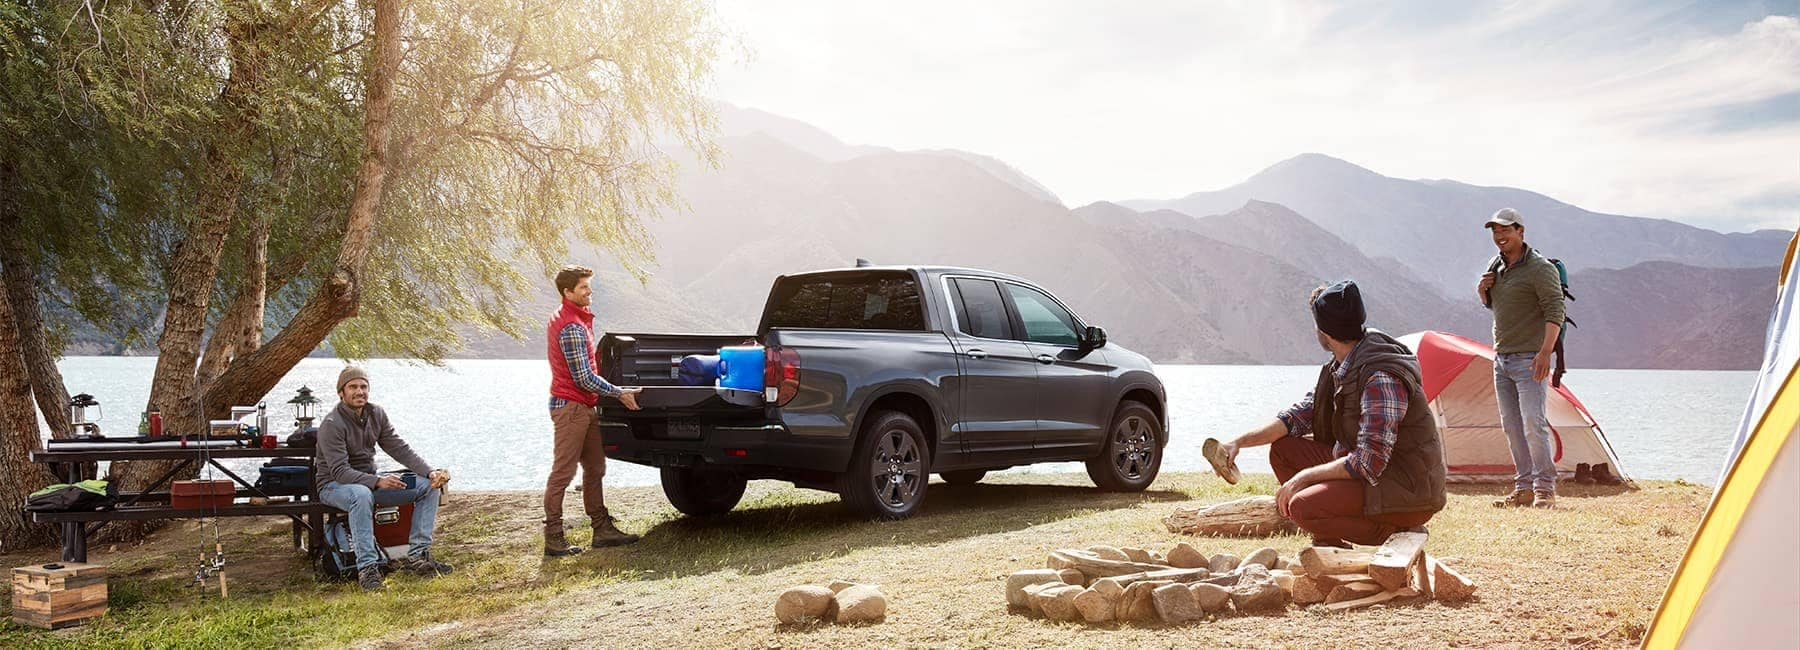 Men are camping with their Honda Ridgeline alongside a lake